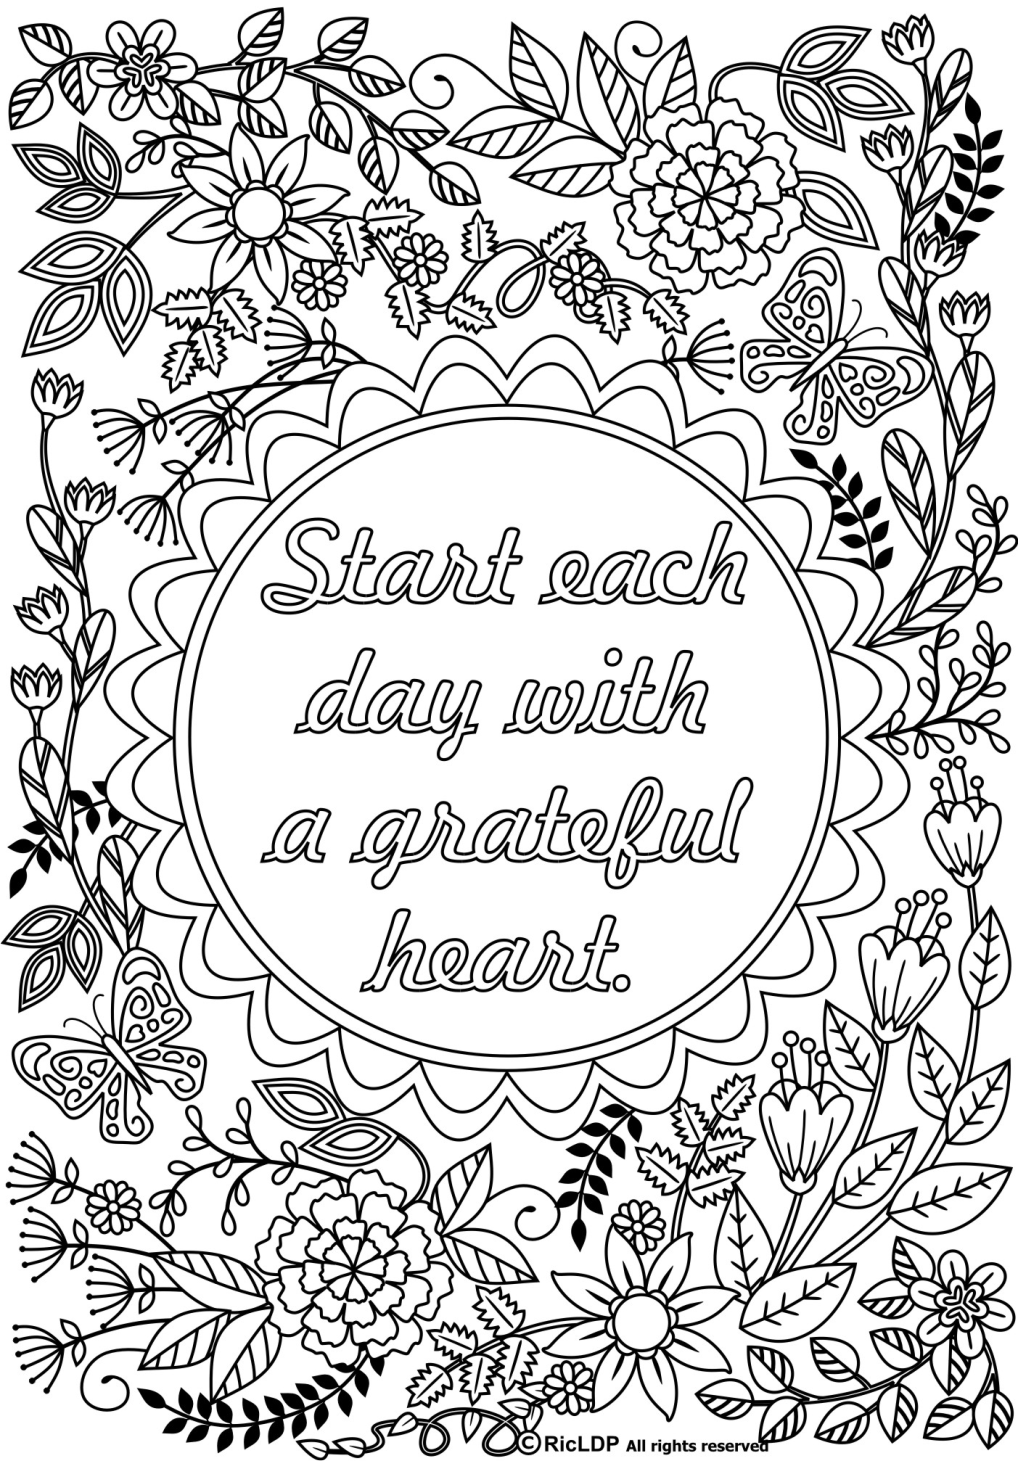 start each day with a grateful heart coloringpages